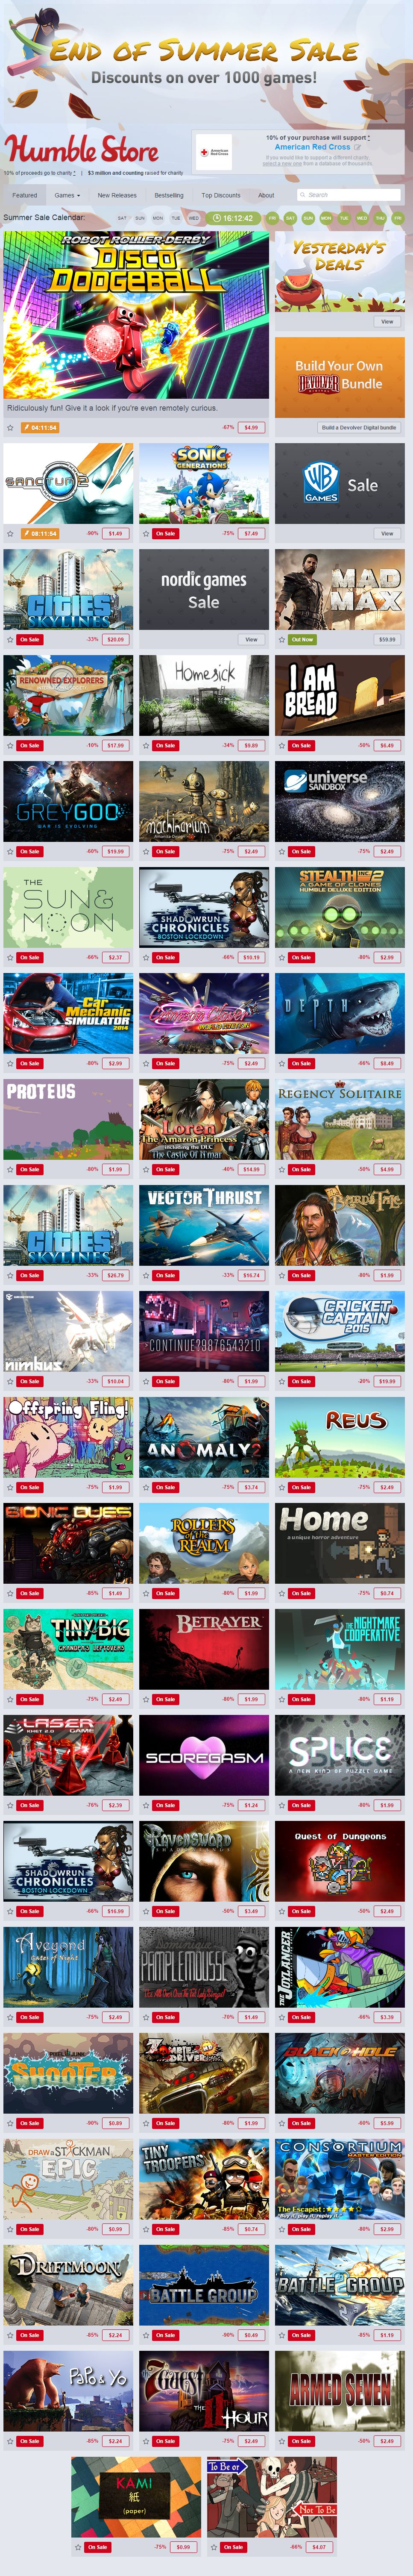 'The Humble Store_ Great games_ Fantastic prices_ Support charity_' - www_humblebundle_com_store.jpg